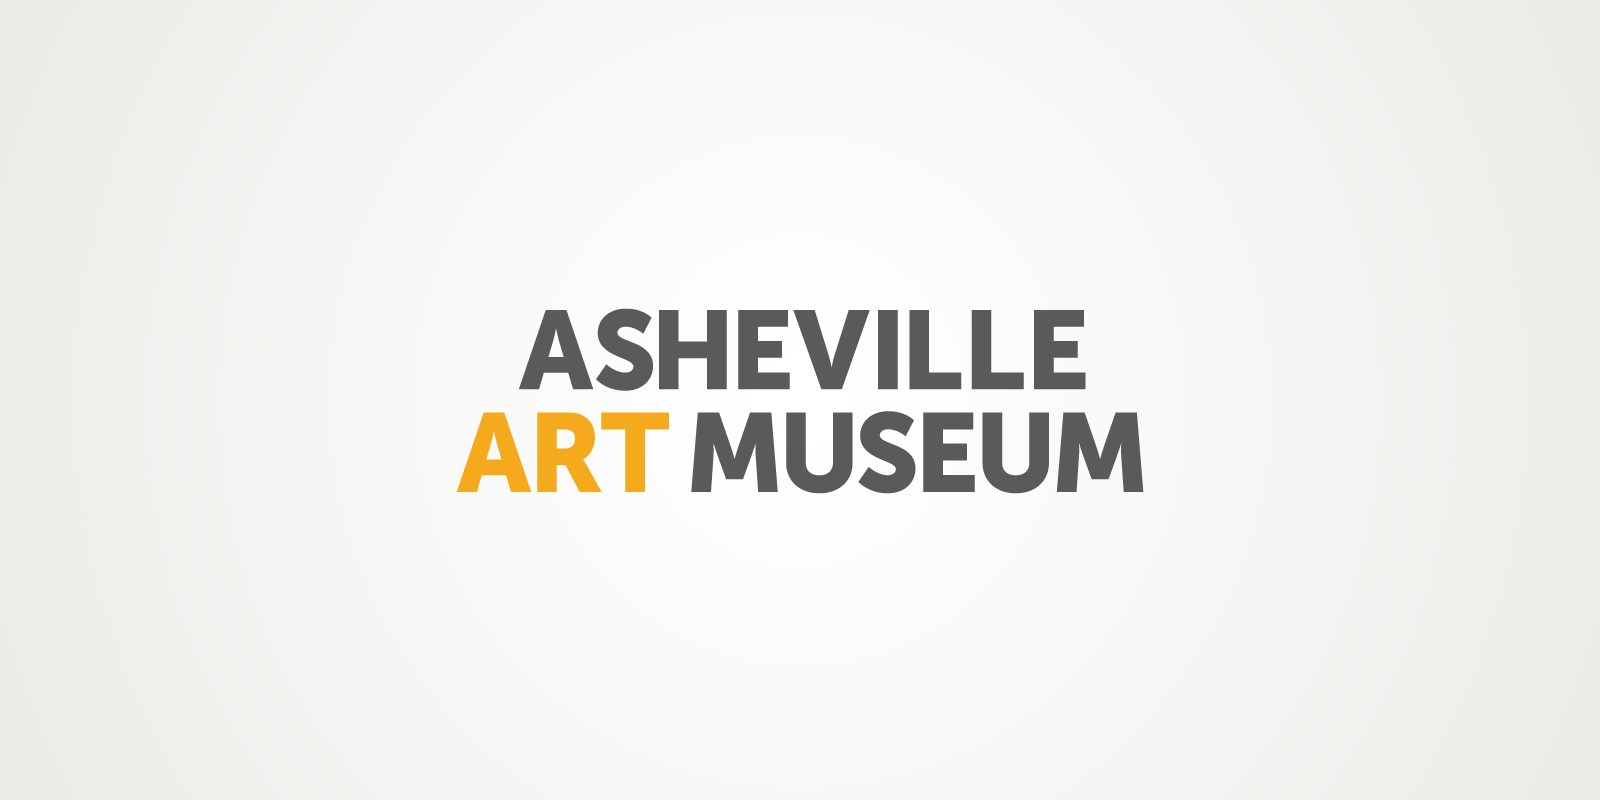 """Asheville Art Museum logo utilizes a modern, all-caps typeface in gray with the word """"ART"""" in gold."""